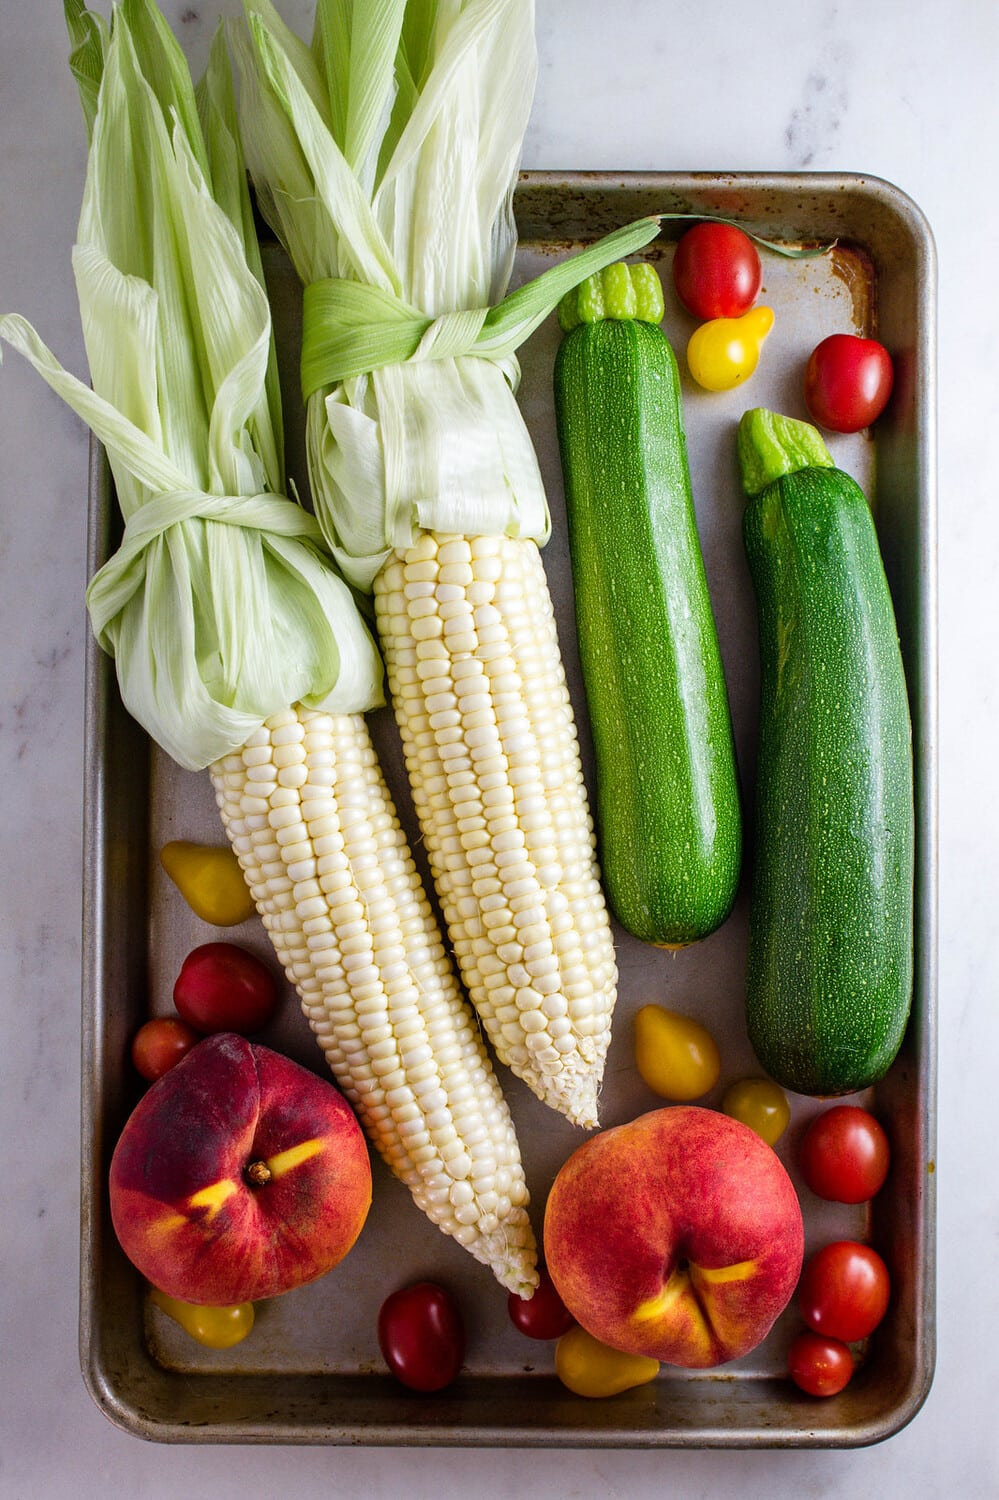 top down view of produce on a rimmed baking sheet.